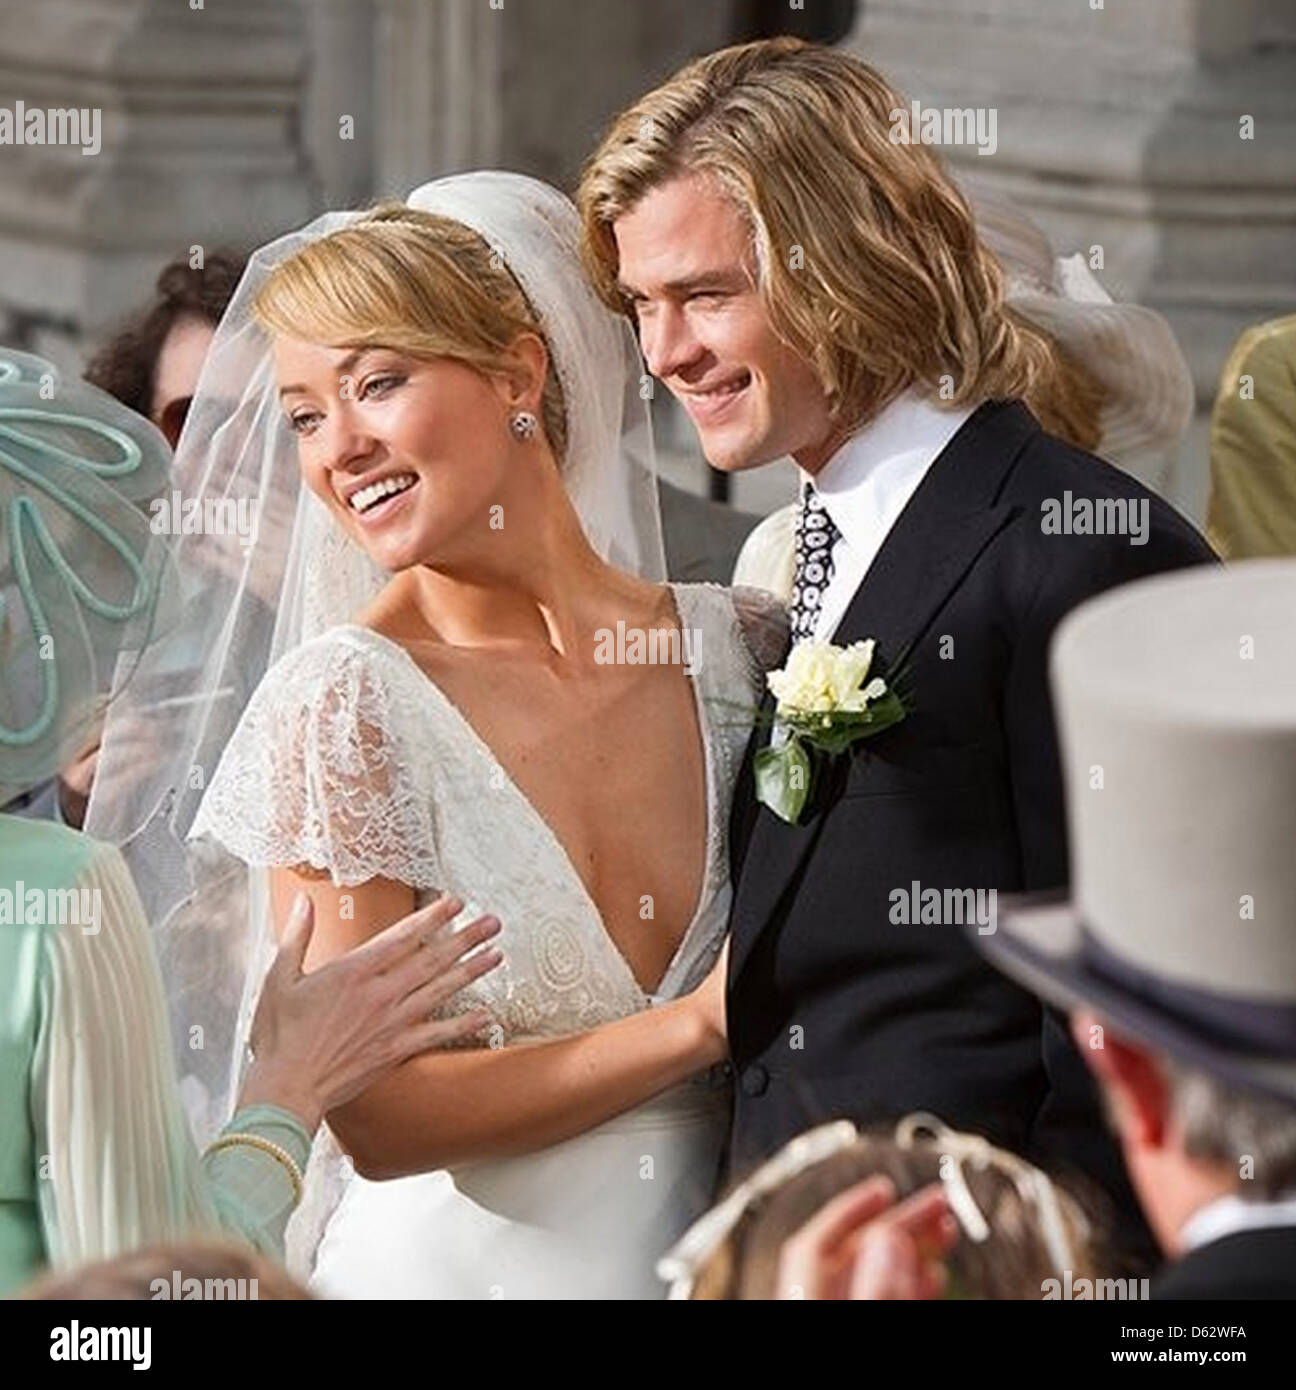 Rush 2013 chris hemsworth stock photos rush 2013 chris hemsworth rush 2013 universal pictures film with chris hemsworth as james hunt and olivia wilde as suzy voltagebd Image collections